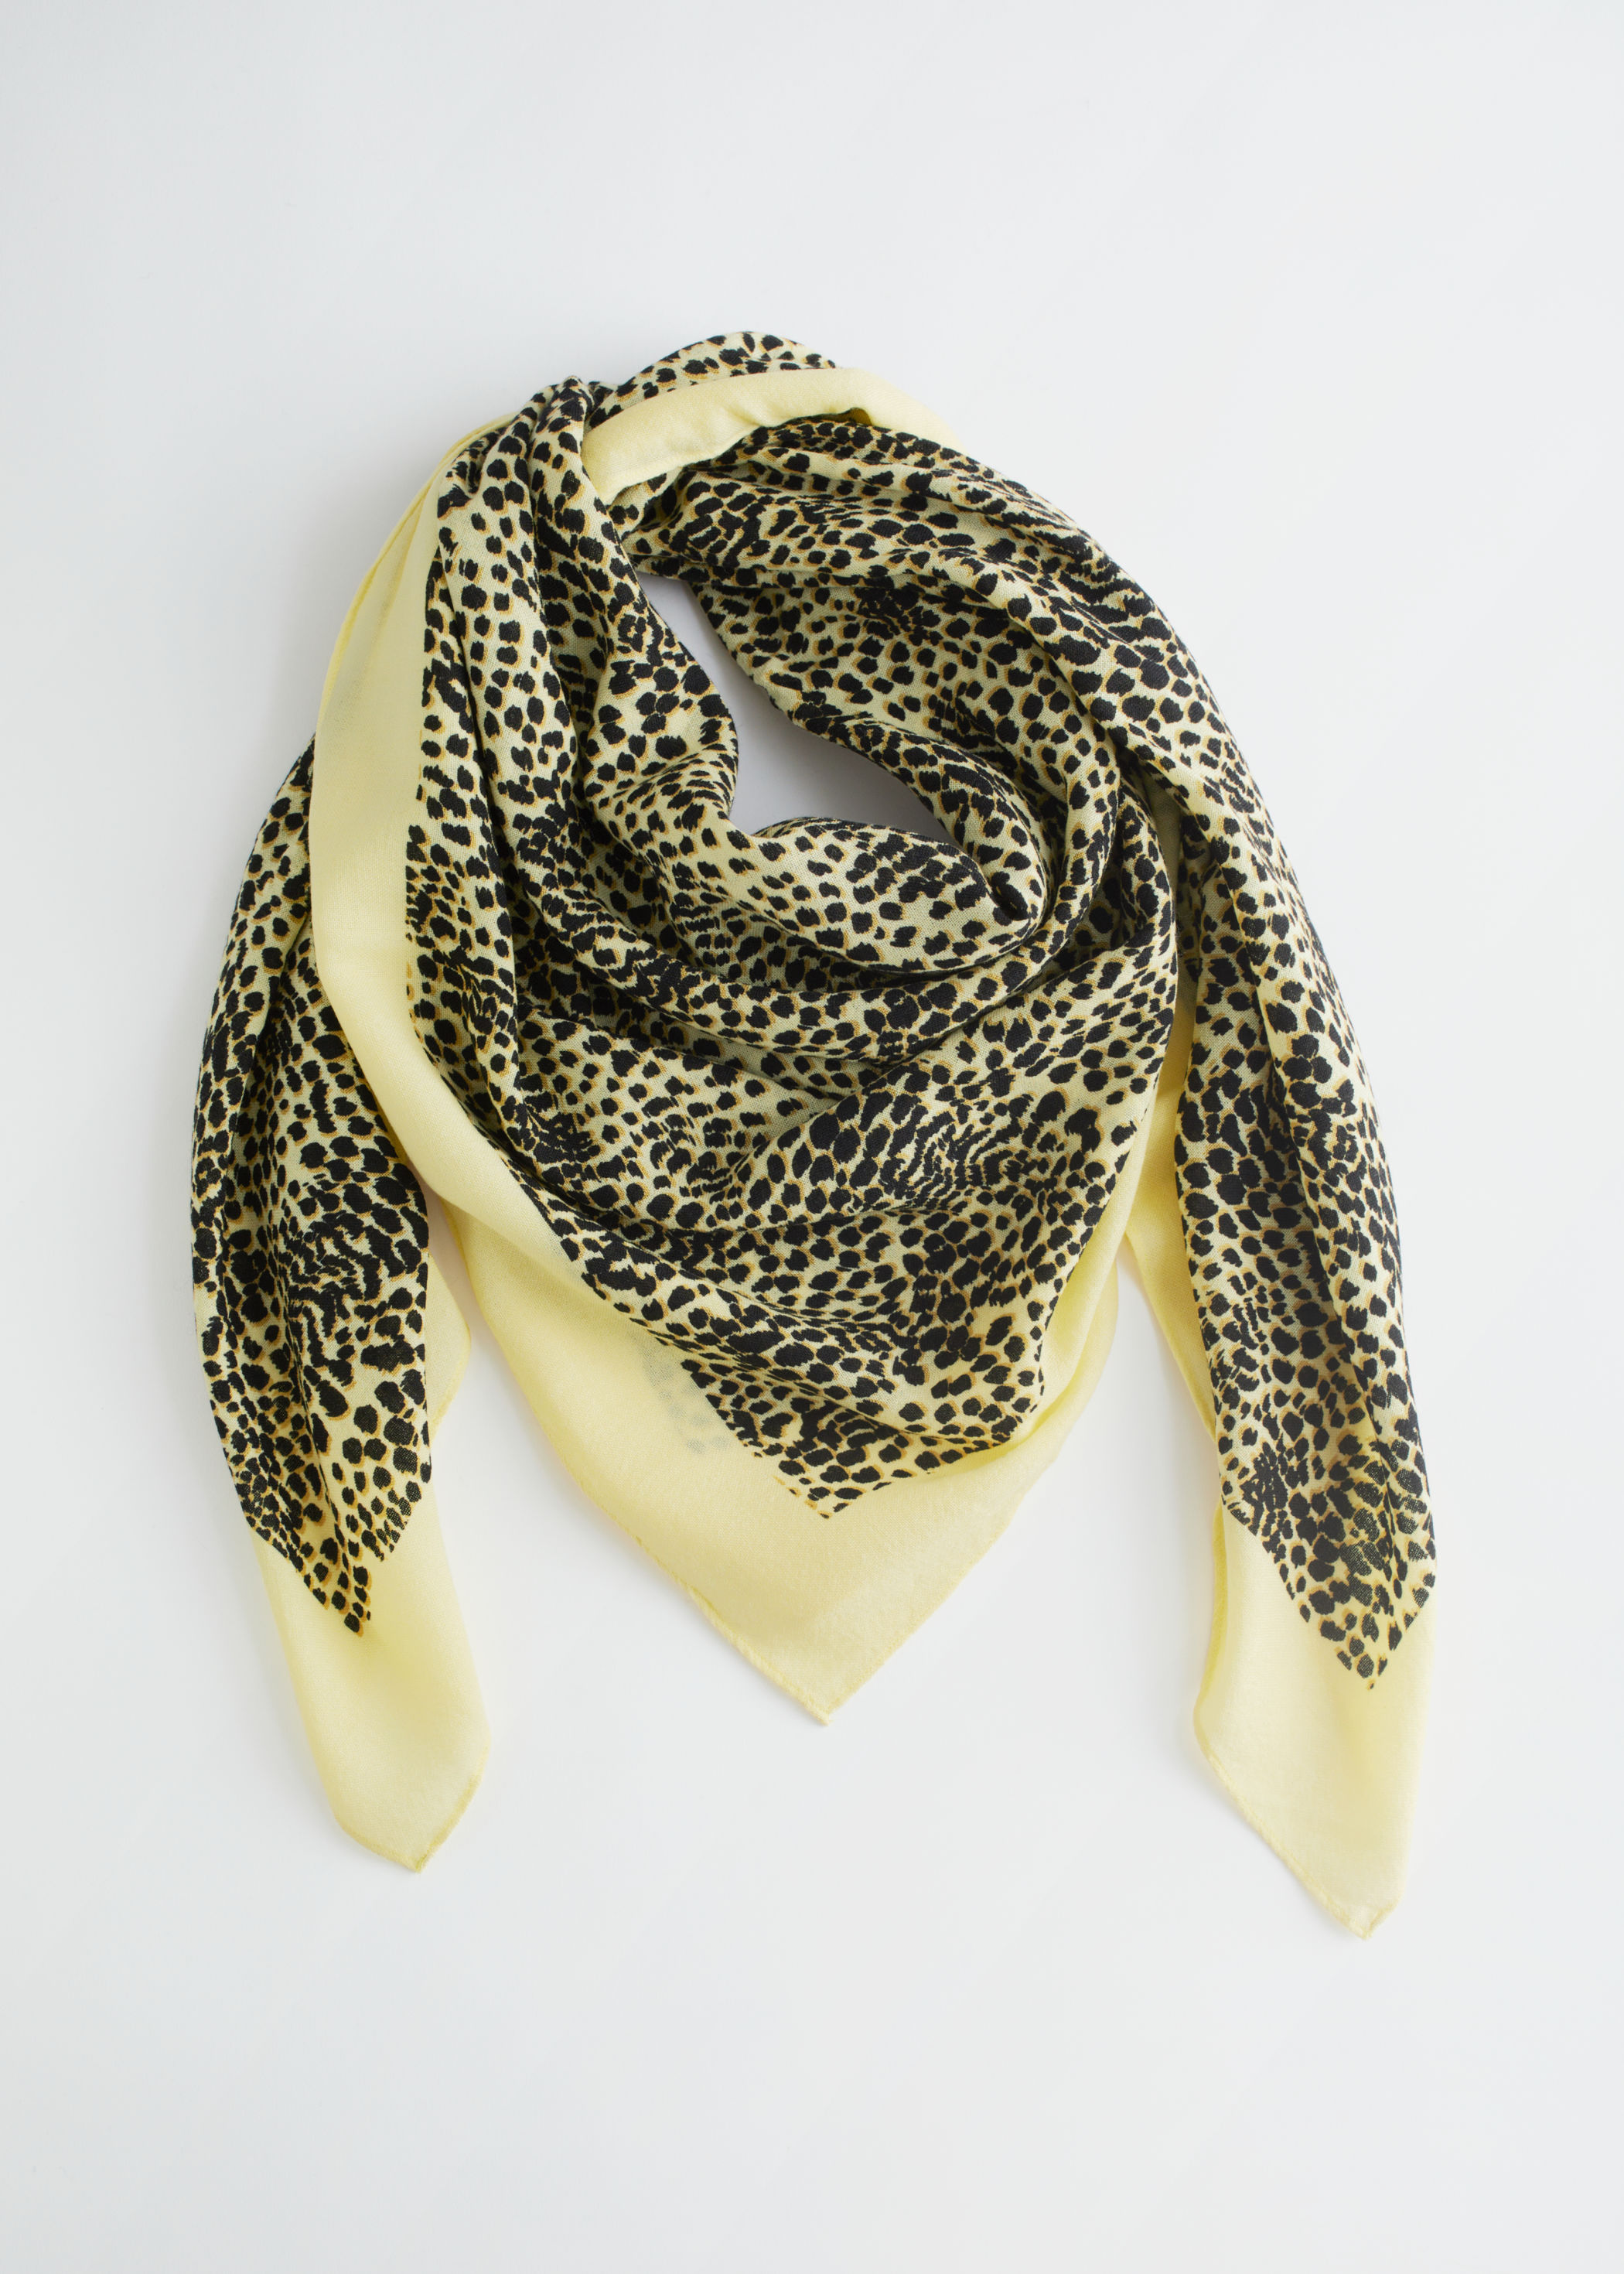 & Other Stories Leopard Print Light Wool Scarf £45